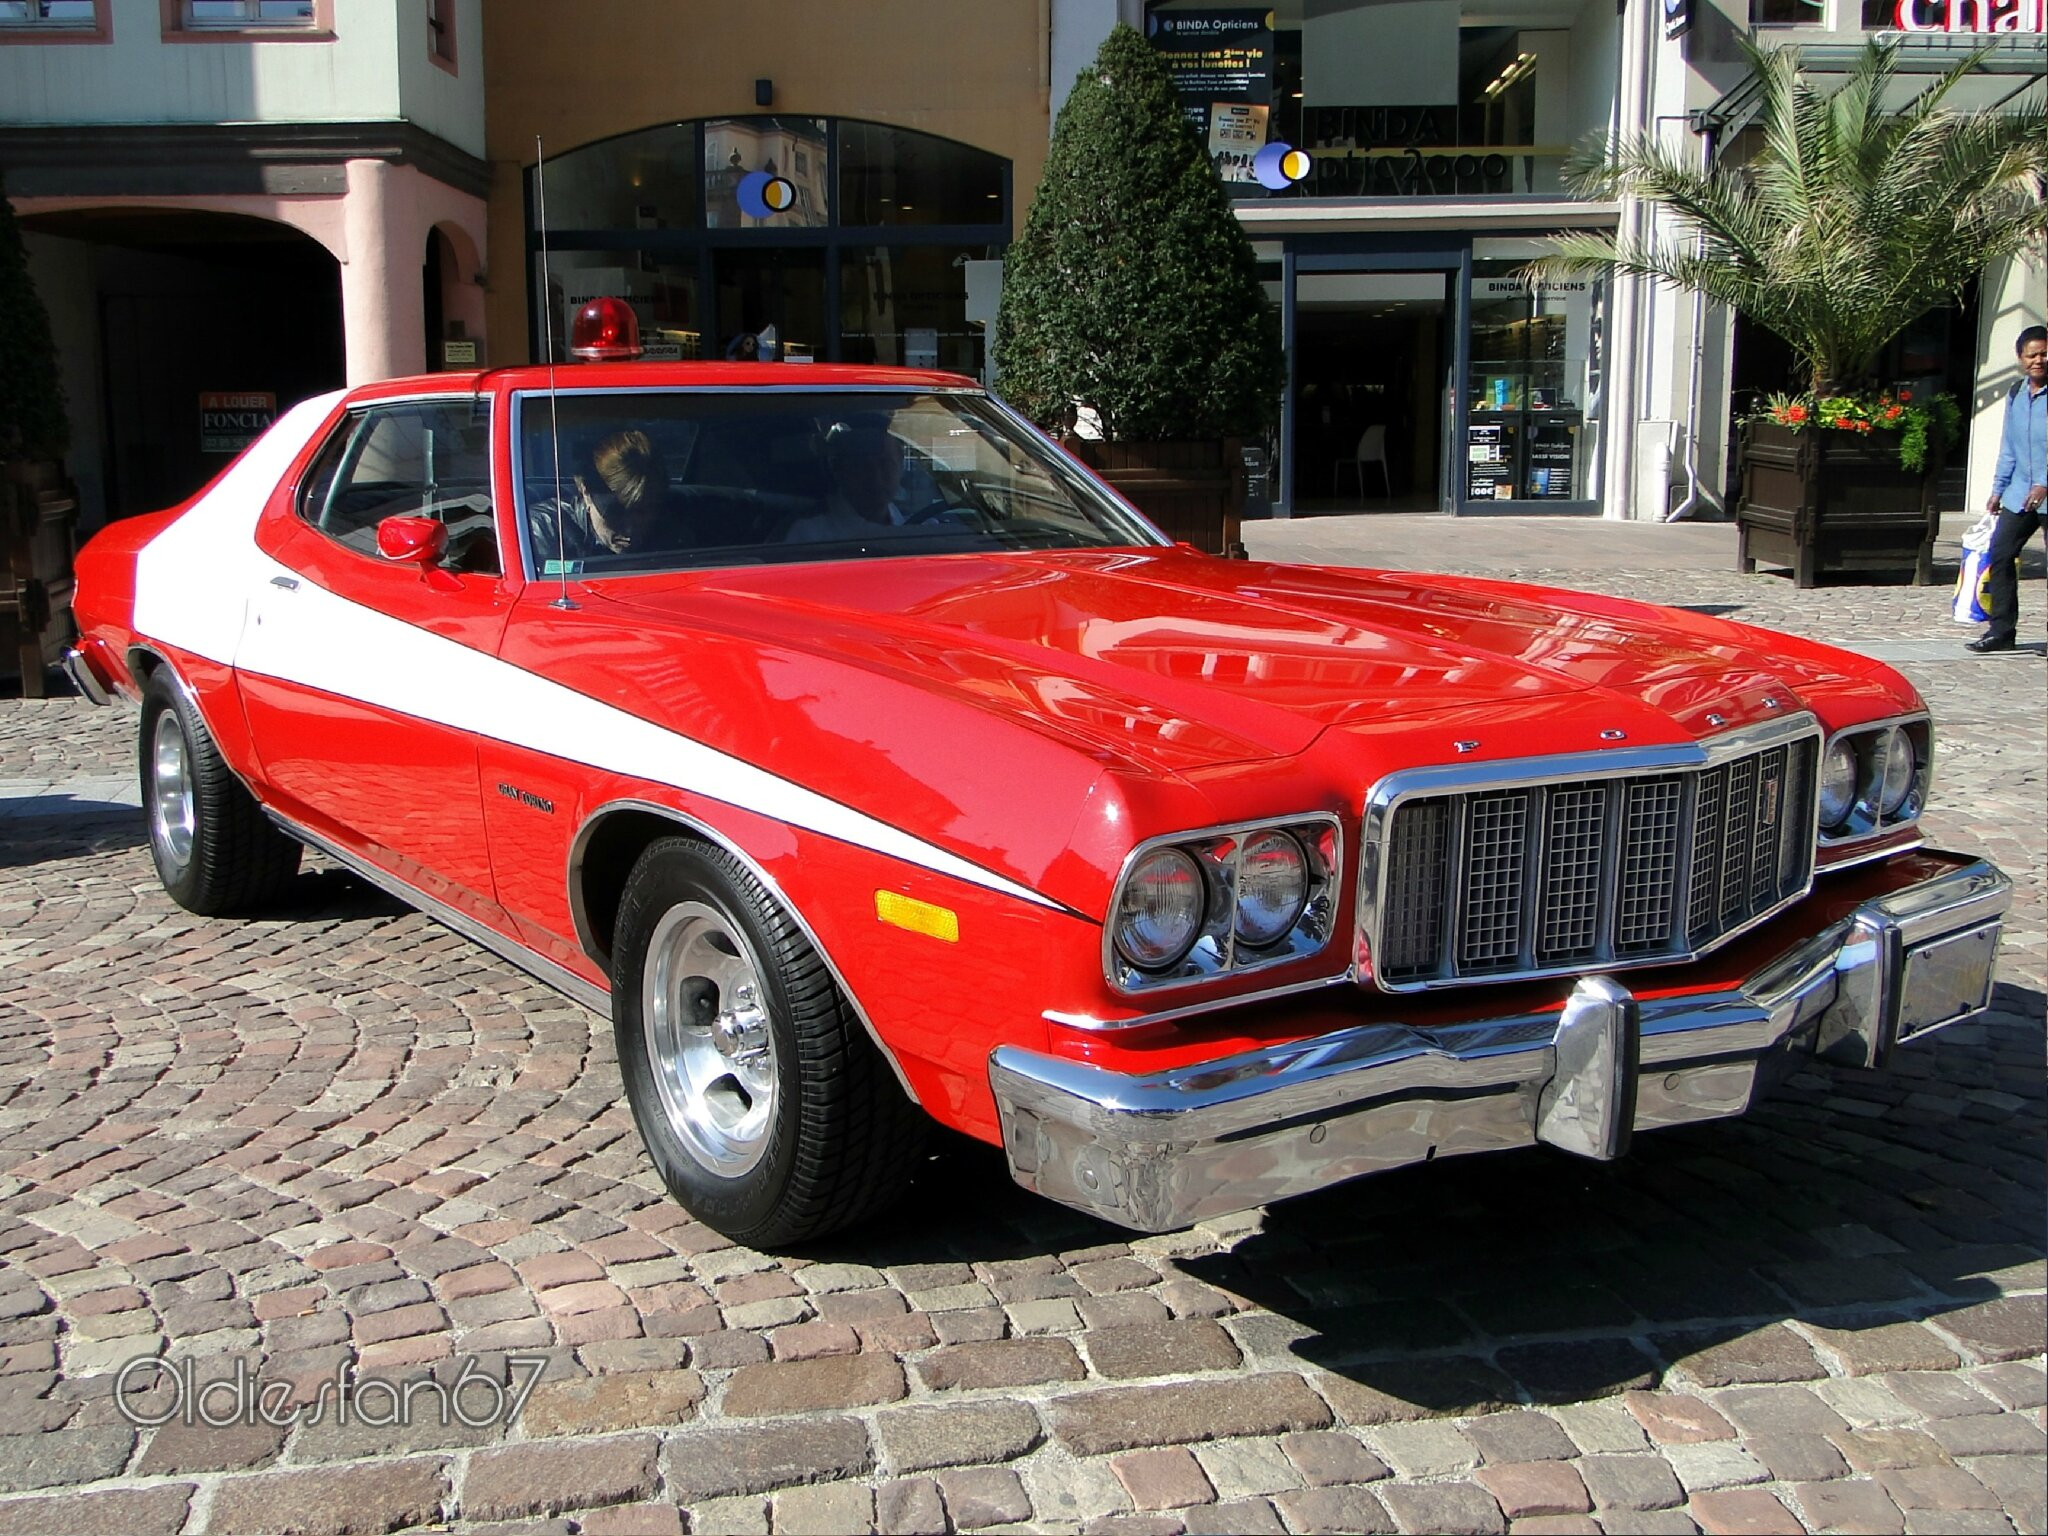 ford gran torino hardtop coupe 1974 1976 oldiesfan67 mon blog auto. Black Bedroom Furniture Sets. Home Design Ideas